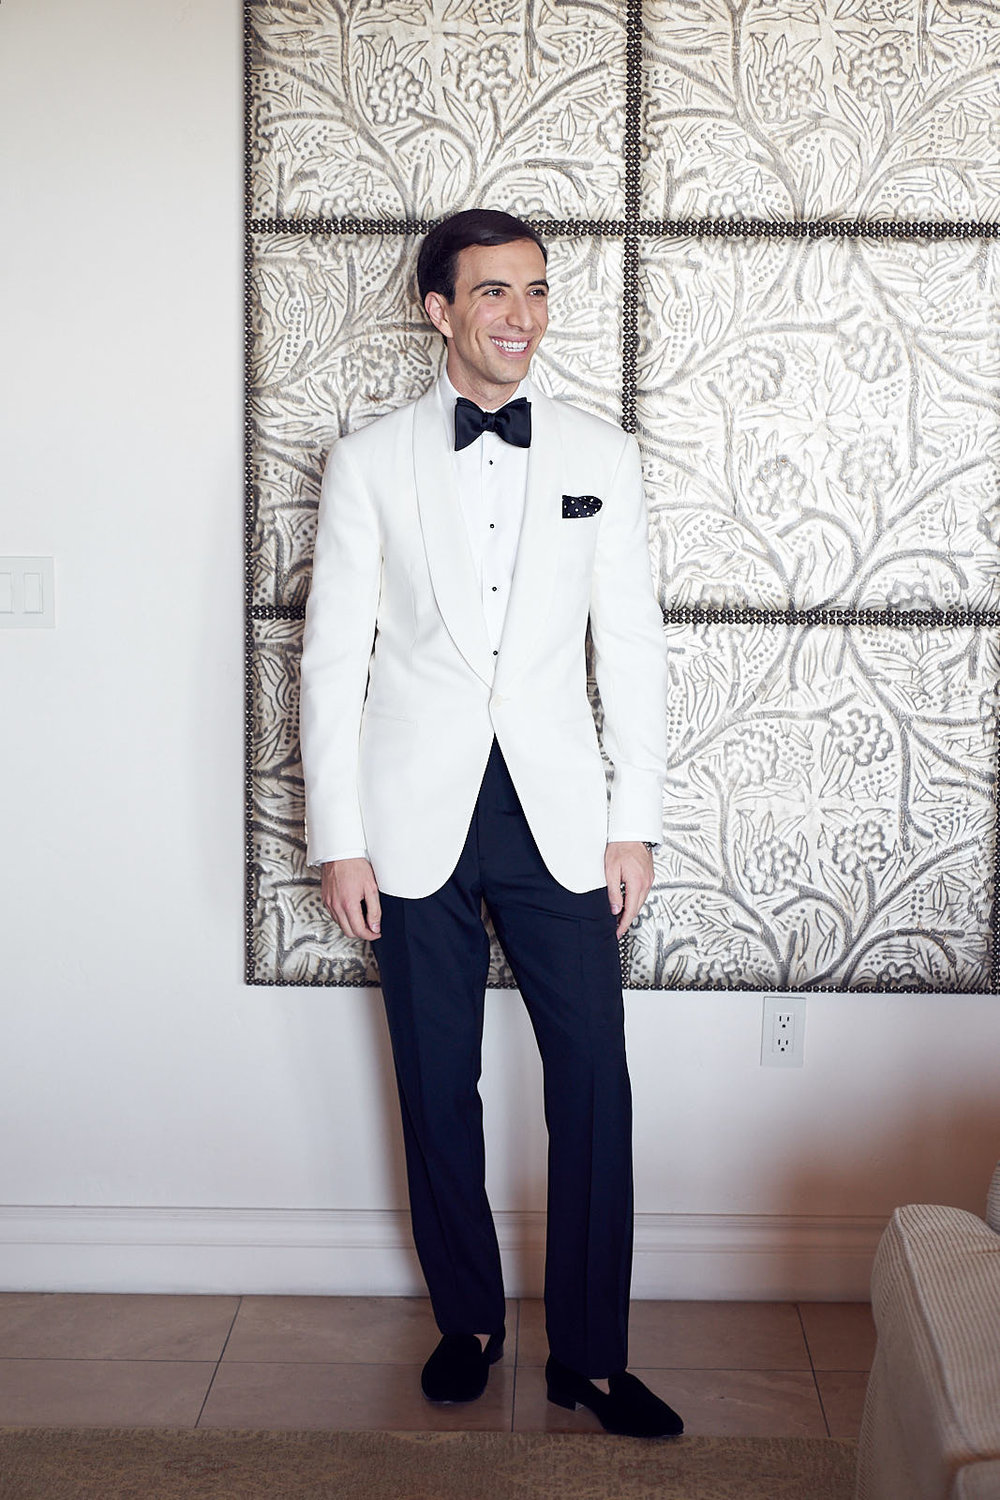 ralph lauren groom suit by Lost In Love Photography